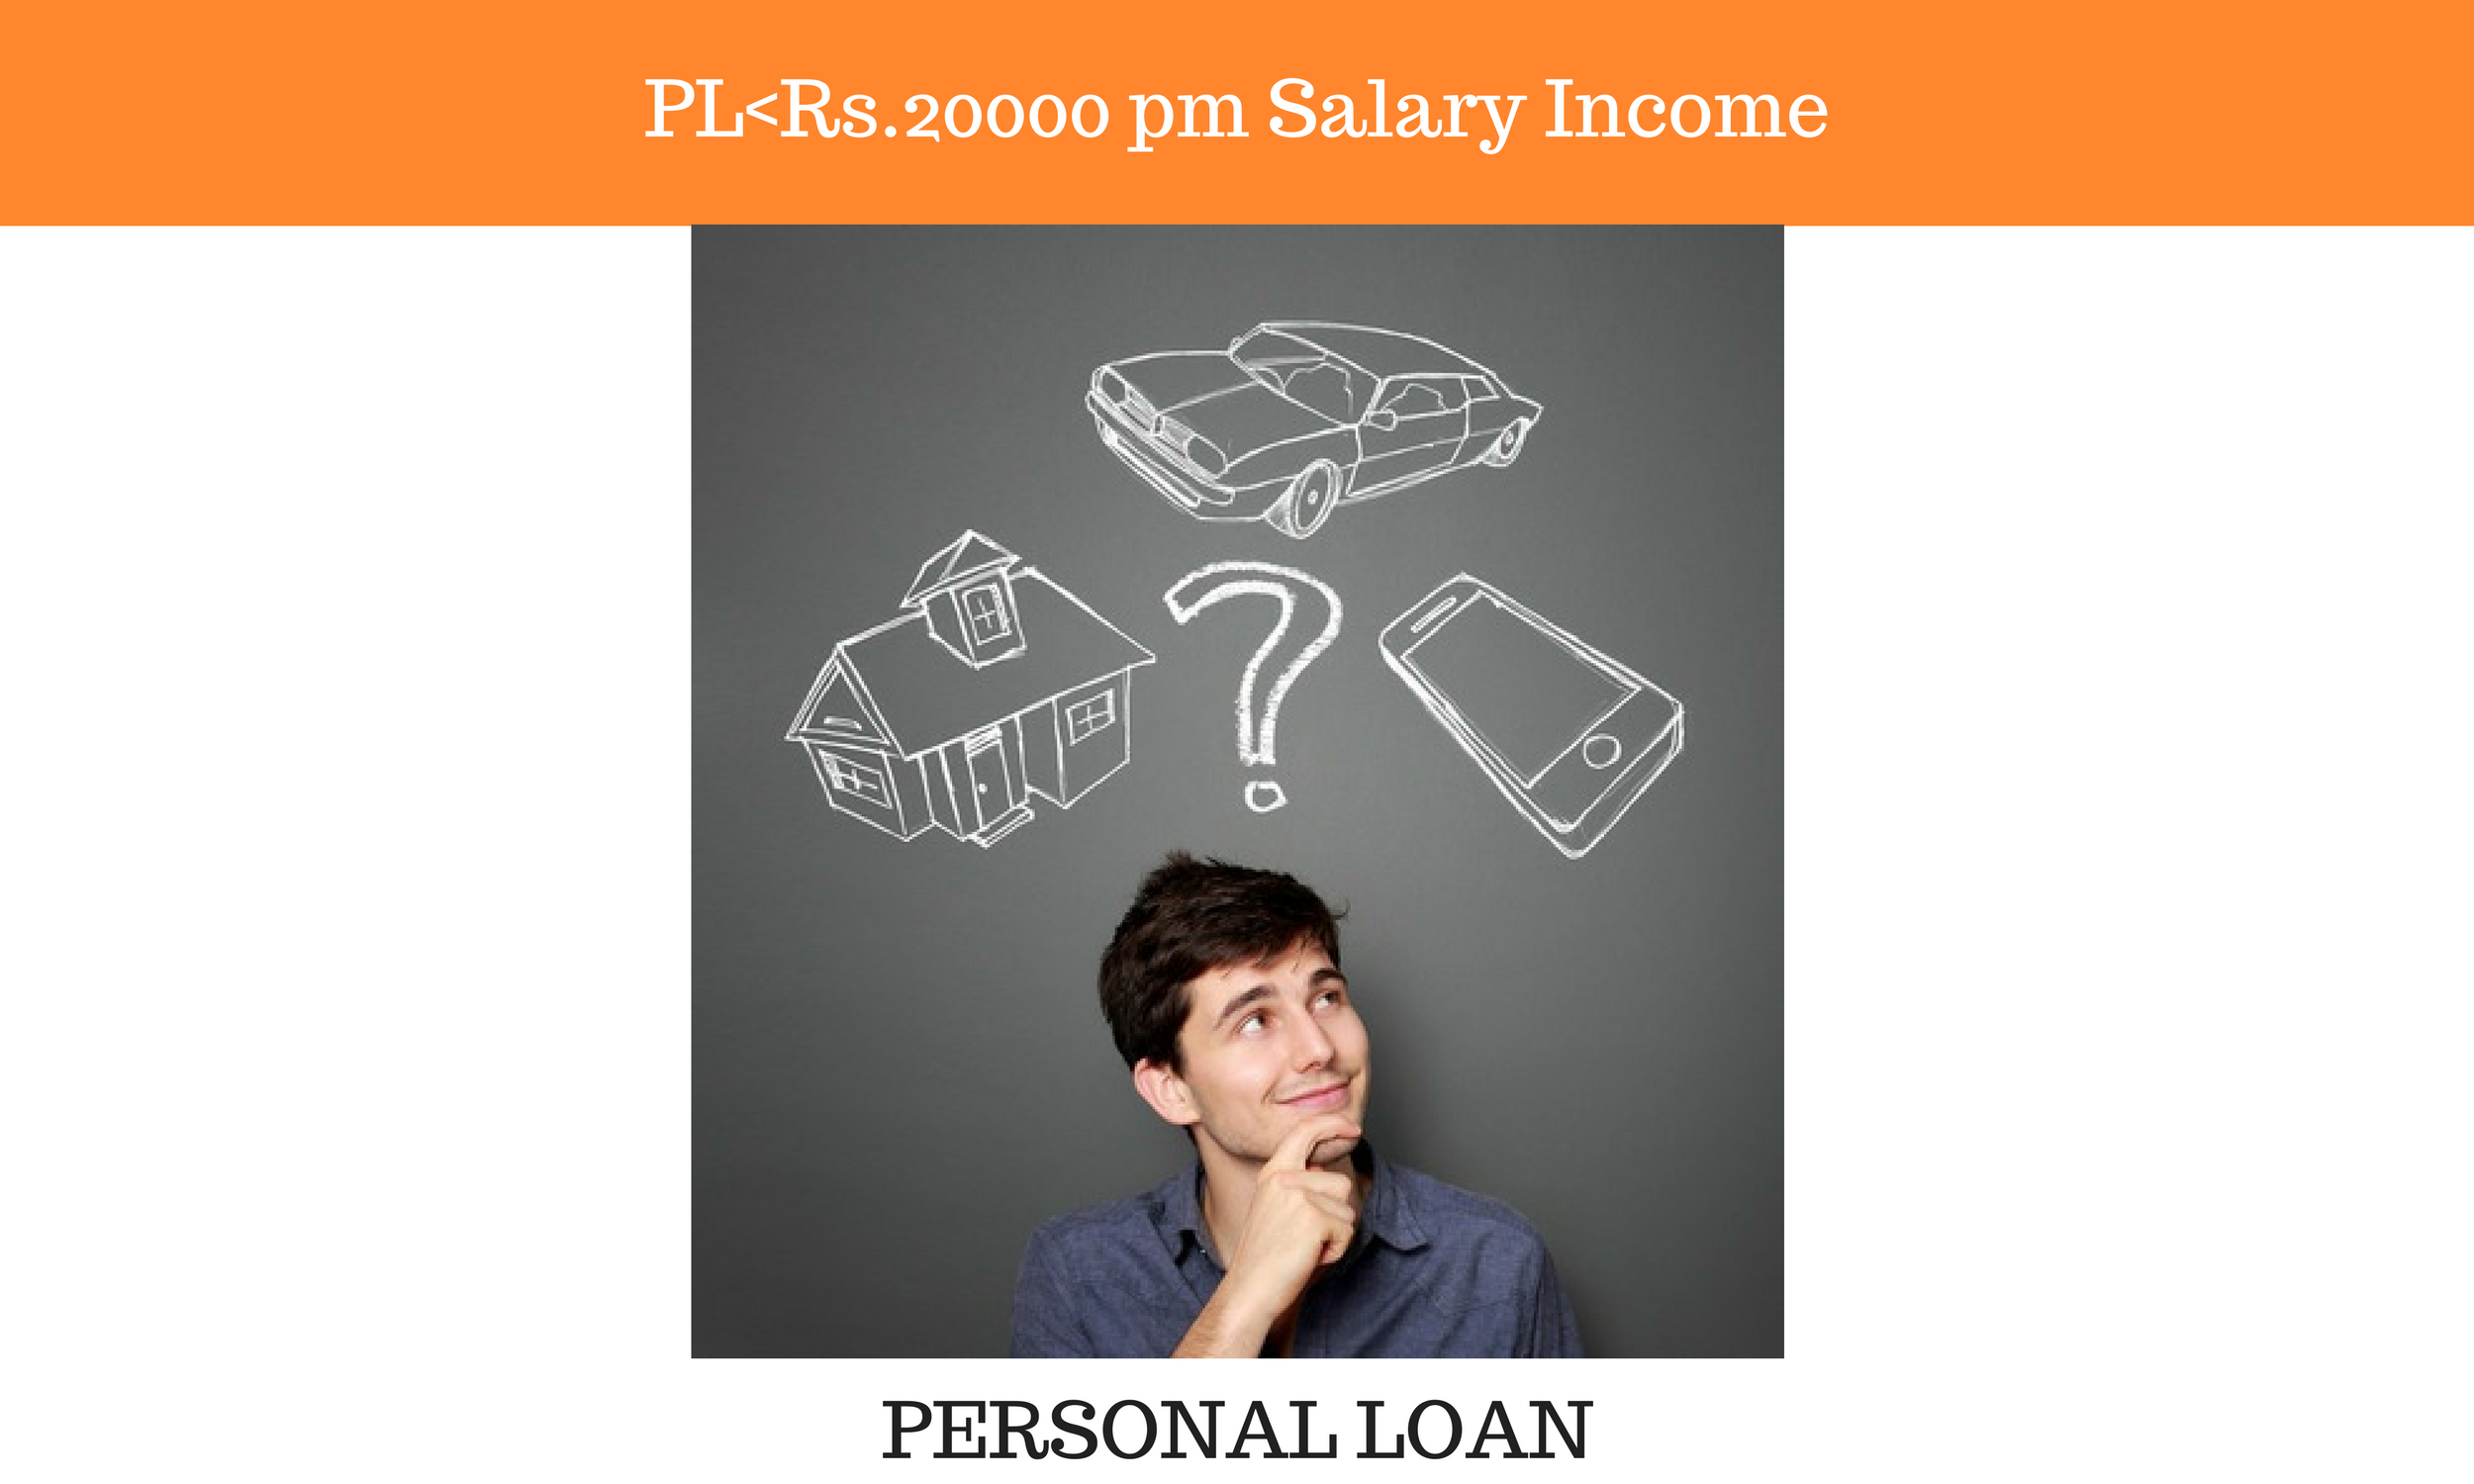 PL for less than Rs.20000 pm Salary Income